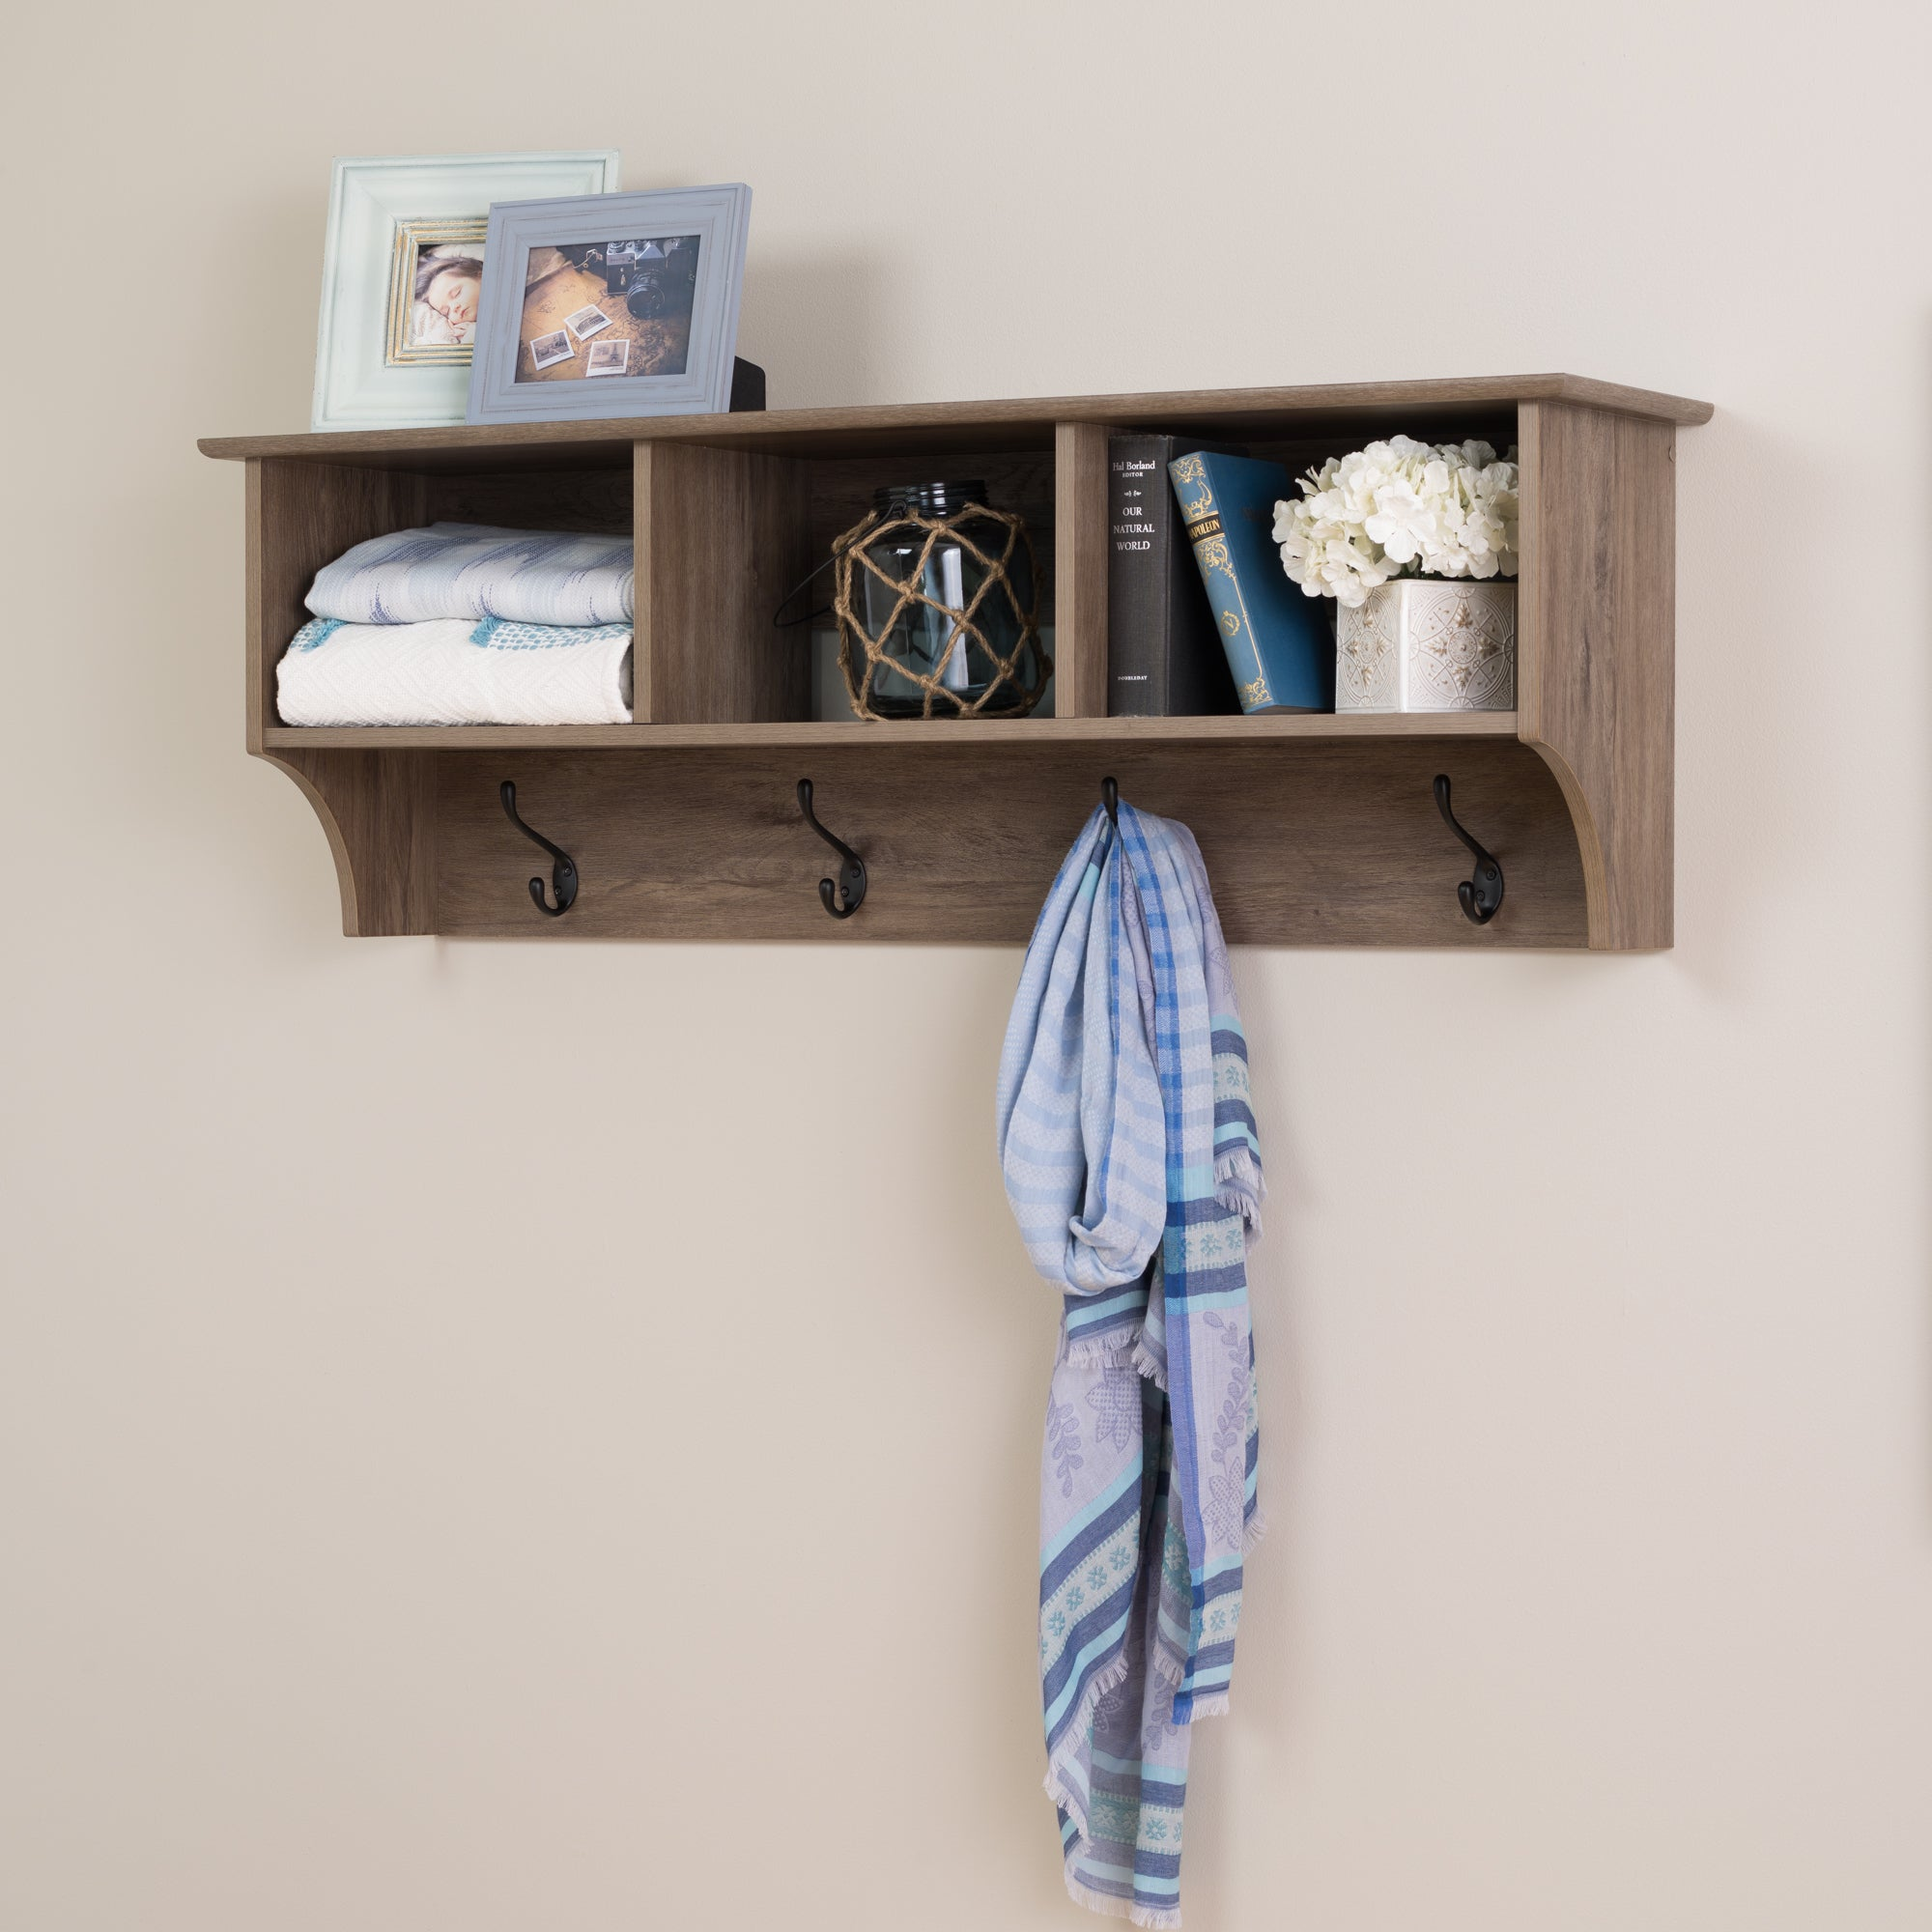 prepac drifted grey wood inch wide floating entryway shelf shelves small kitchen island with stools bathroom toilet makeshift shoe rack closets and cabinets cube wall mounted